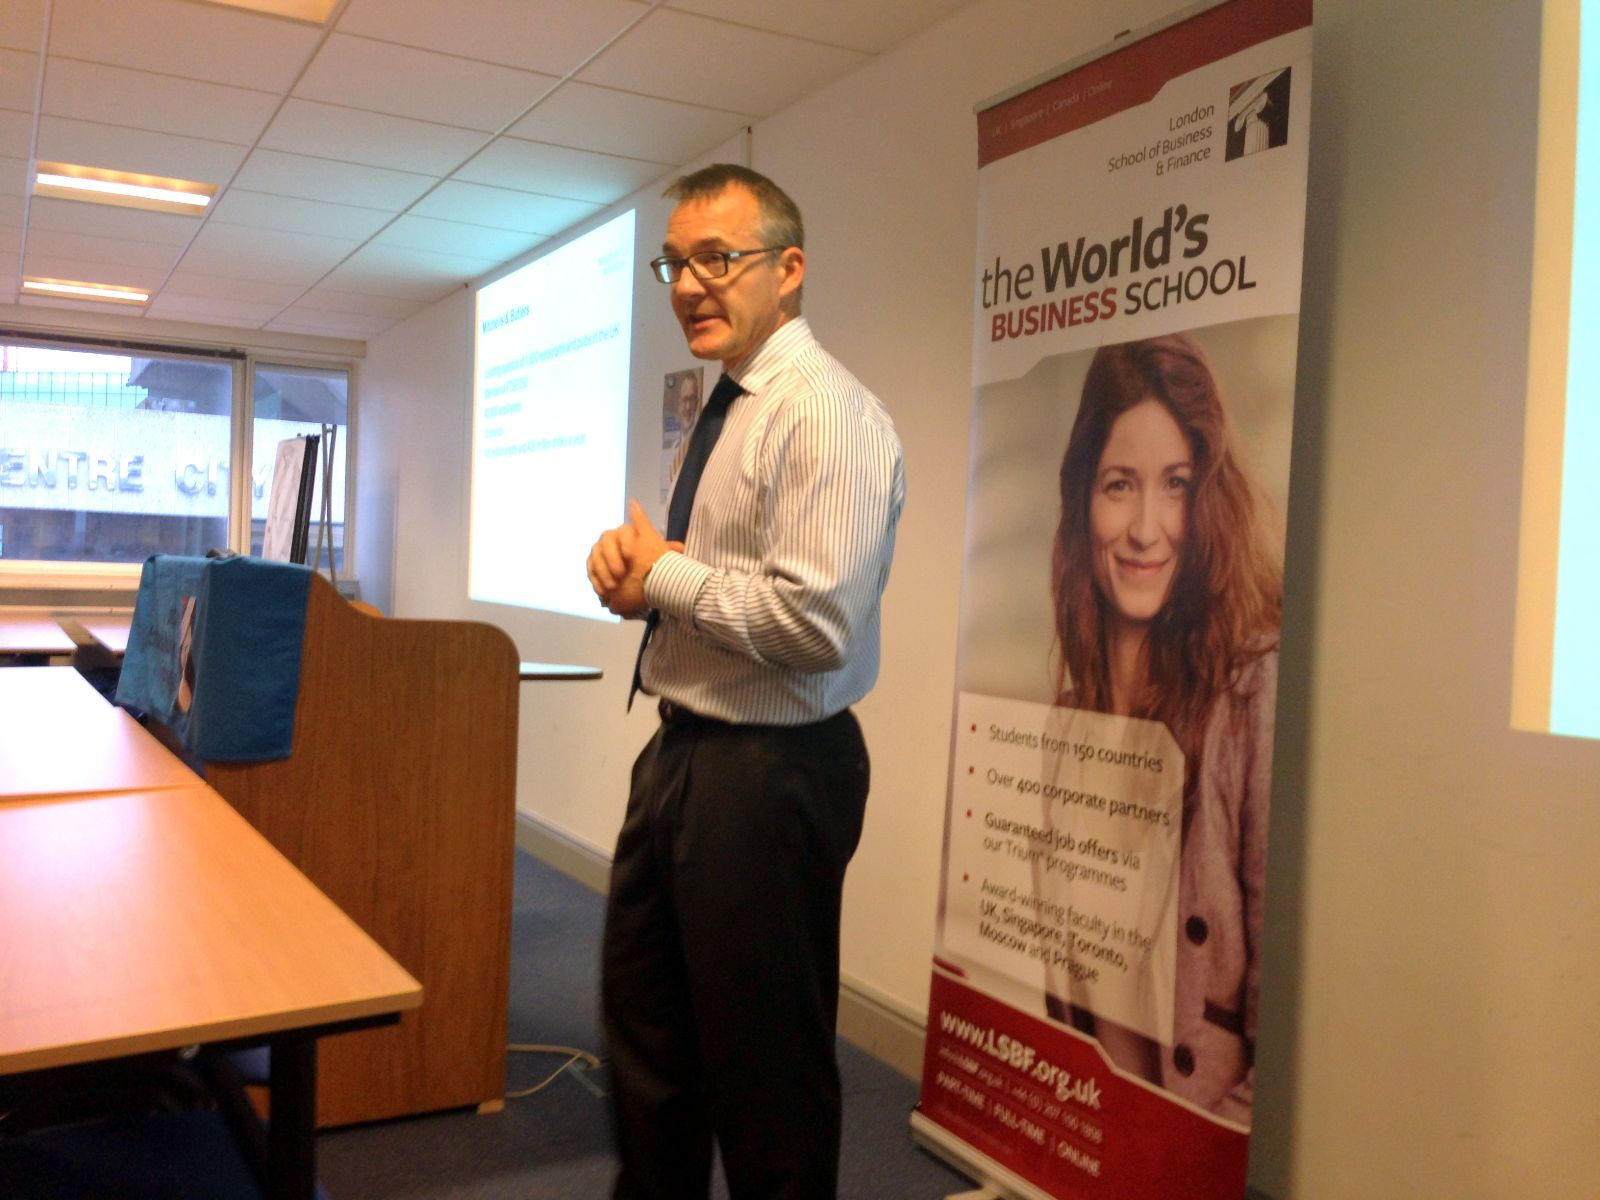 Alistair Darby delivered presentation to help enhance students management skills